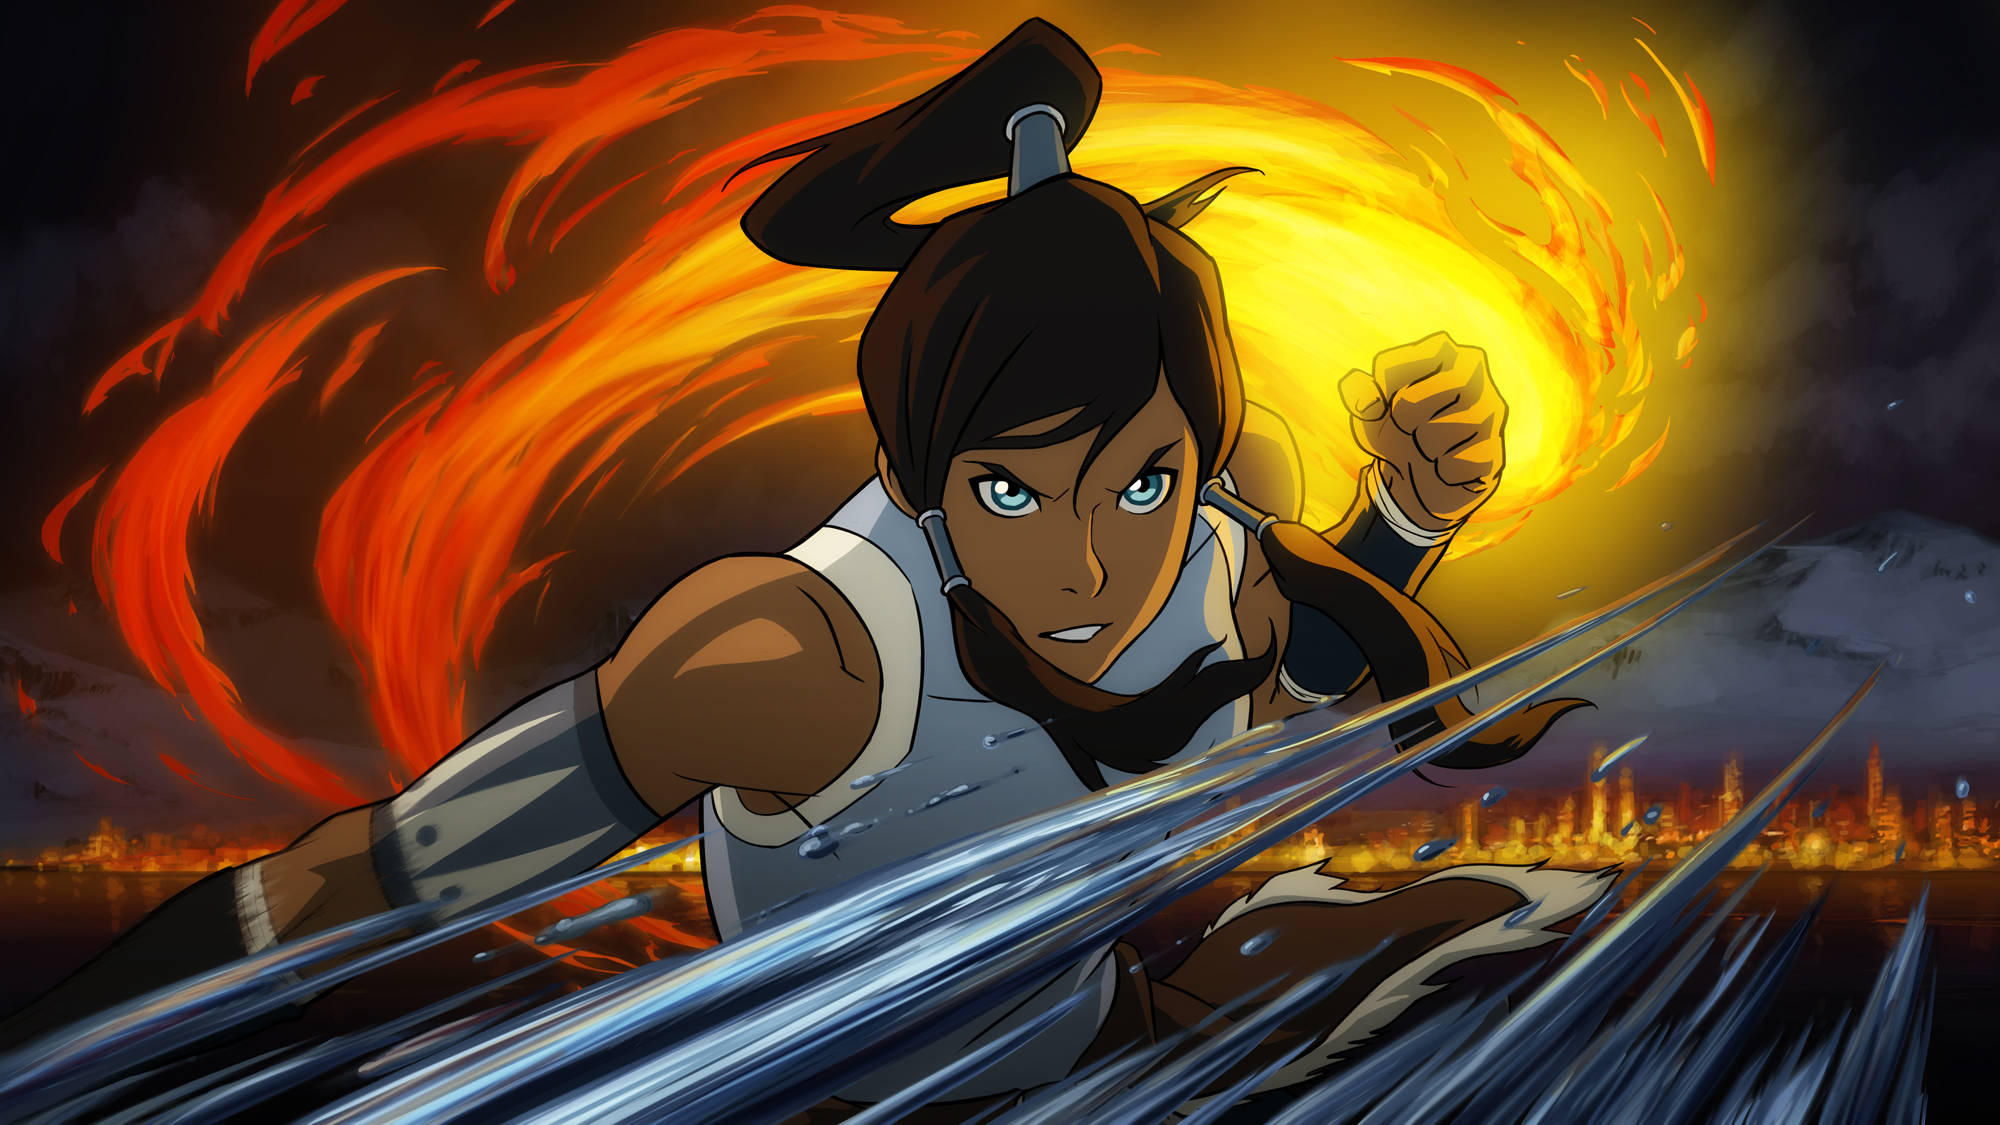 Korra avatar images avatar korra hd wallpaper and background korra avatar images avatar korra hd wallpaper and background photos voltagebd Images